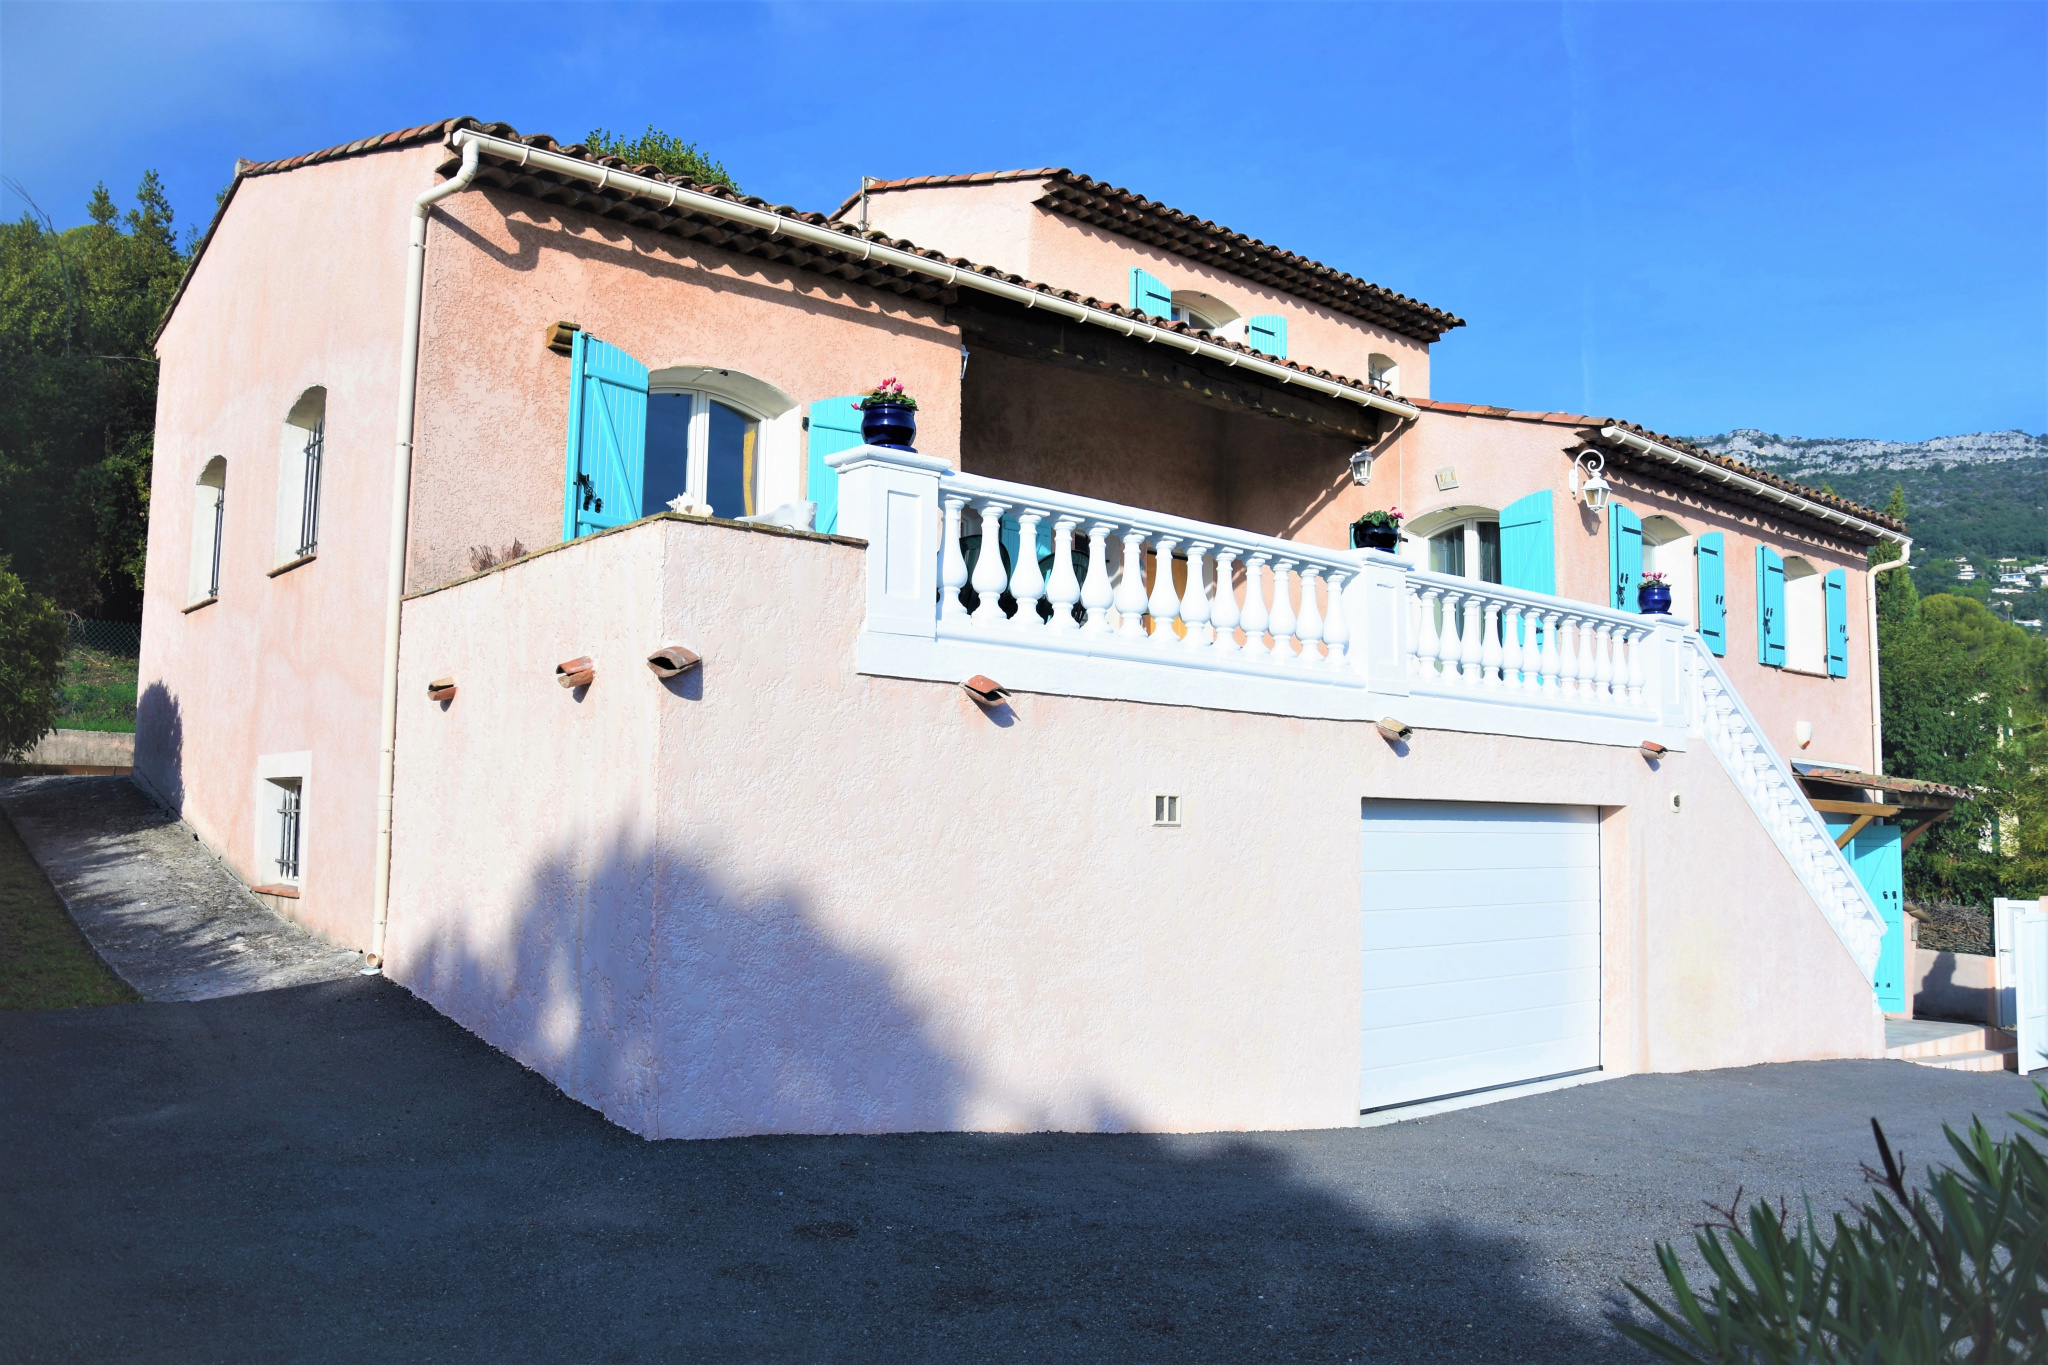 SOUTH VENCE - VILLA 5 ROOMS IN PERFECT CONDITION